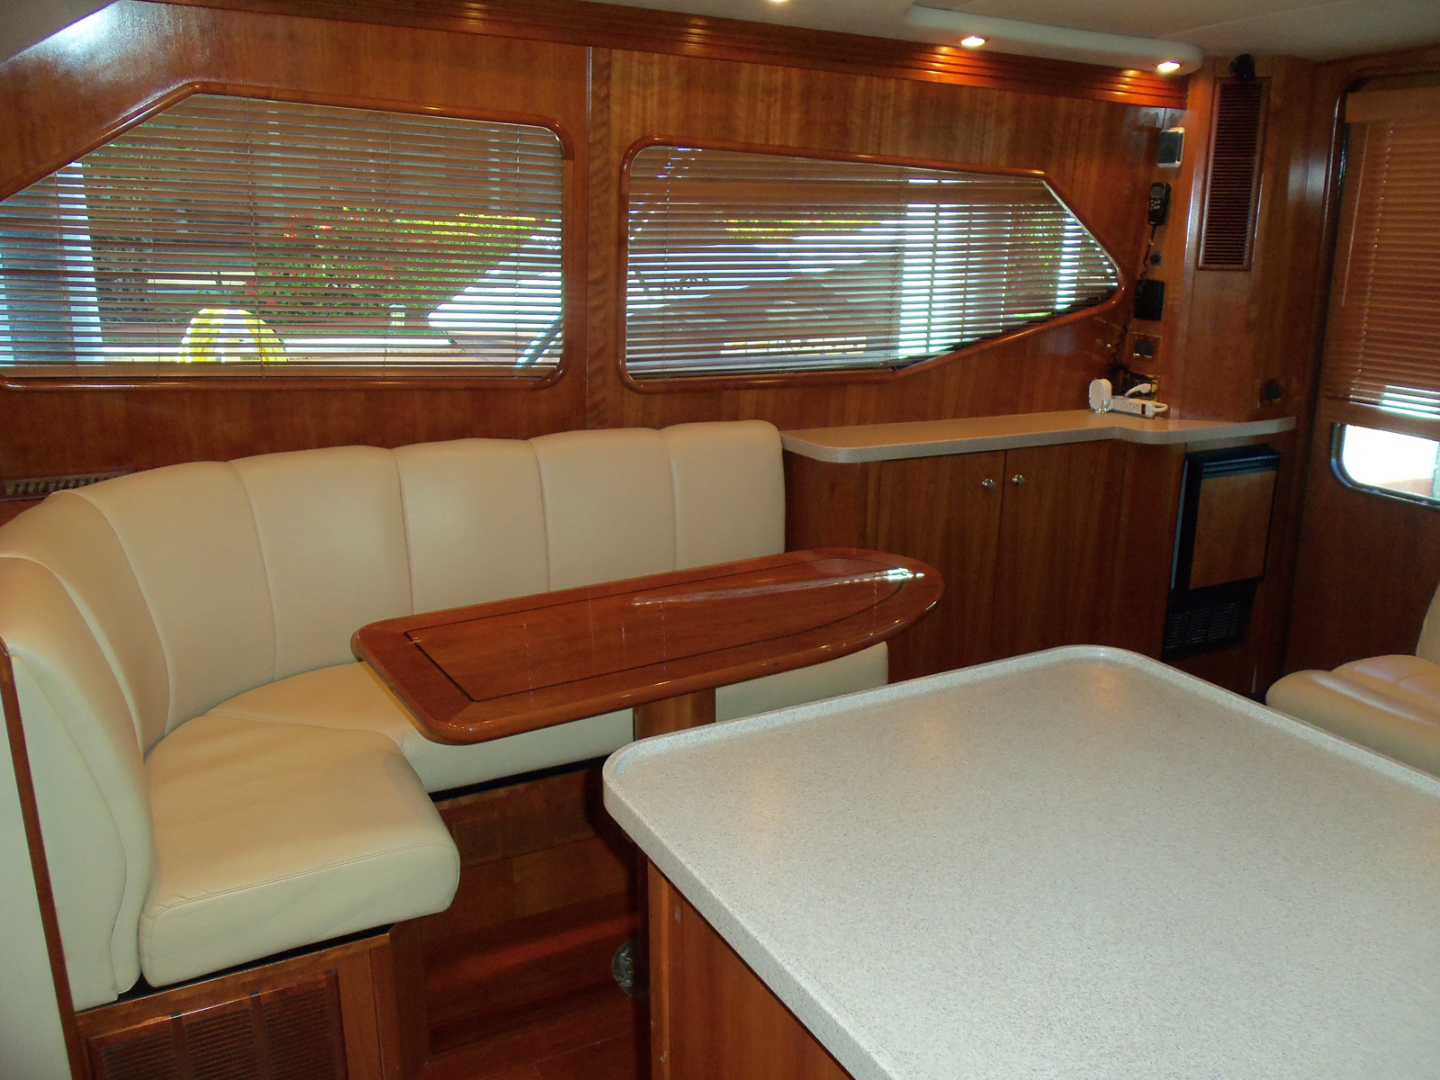 Rampage-45 SF 2004-MY DOLLY Ft. Lauderdale-Florida-United States Starboard Across from Galley-1563923 | Thumbnail